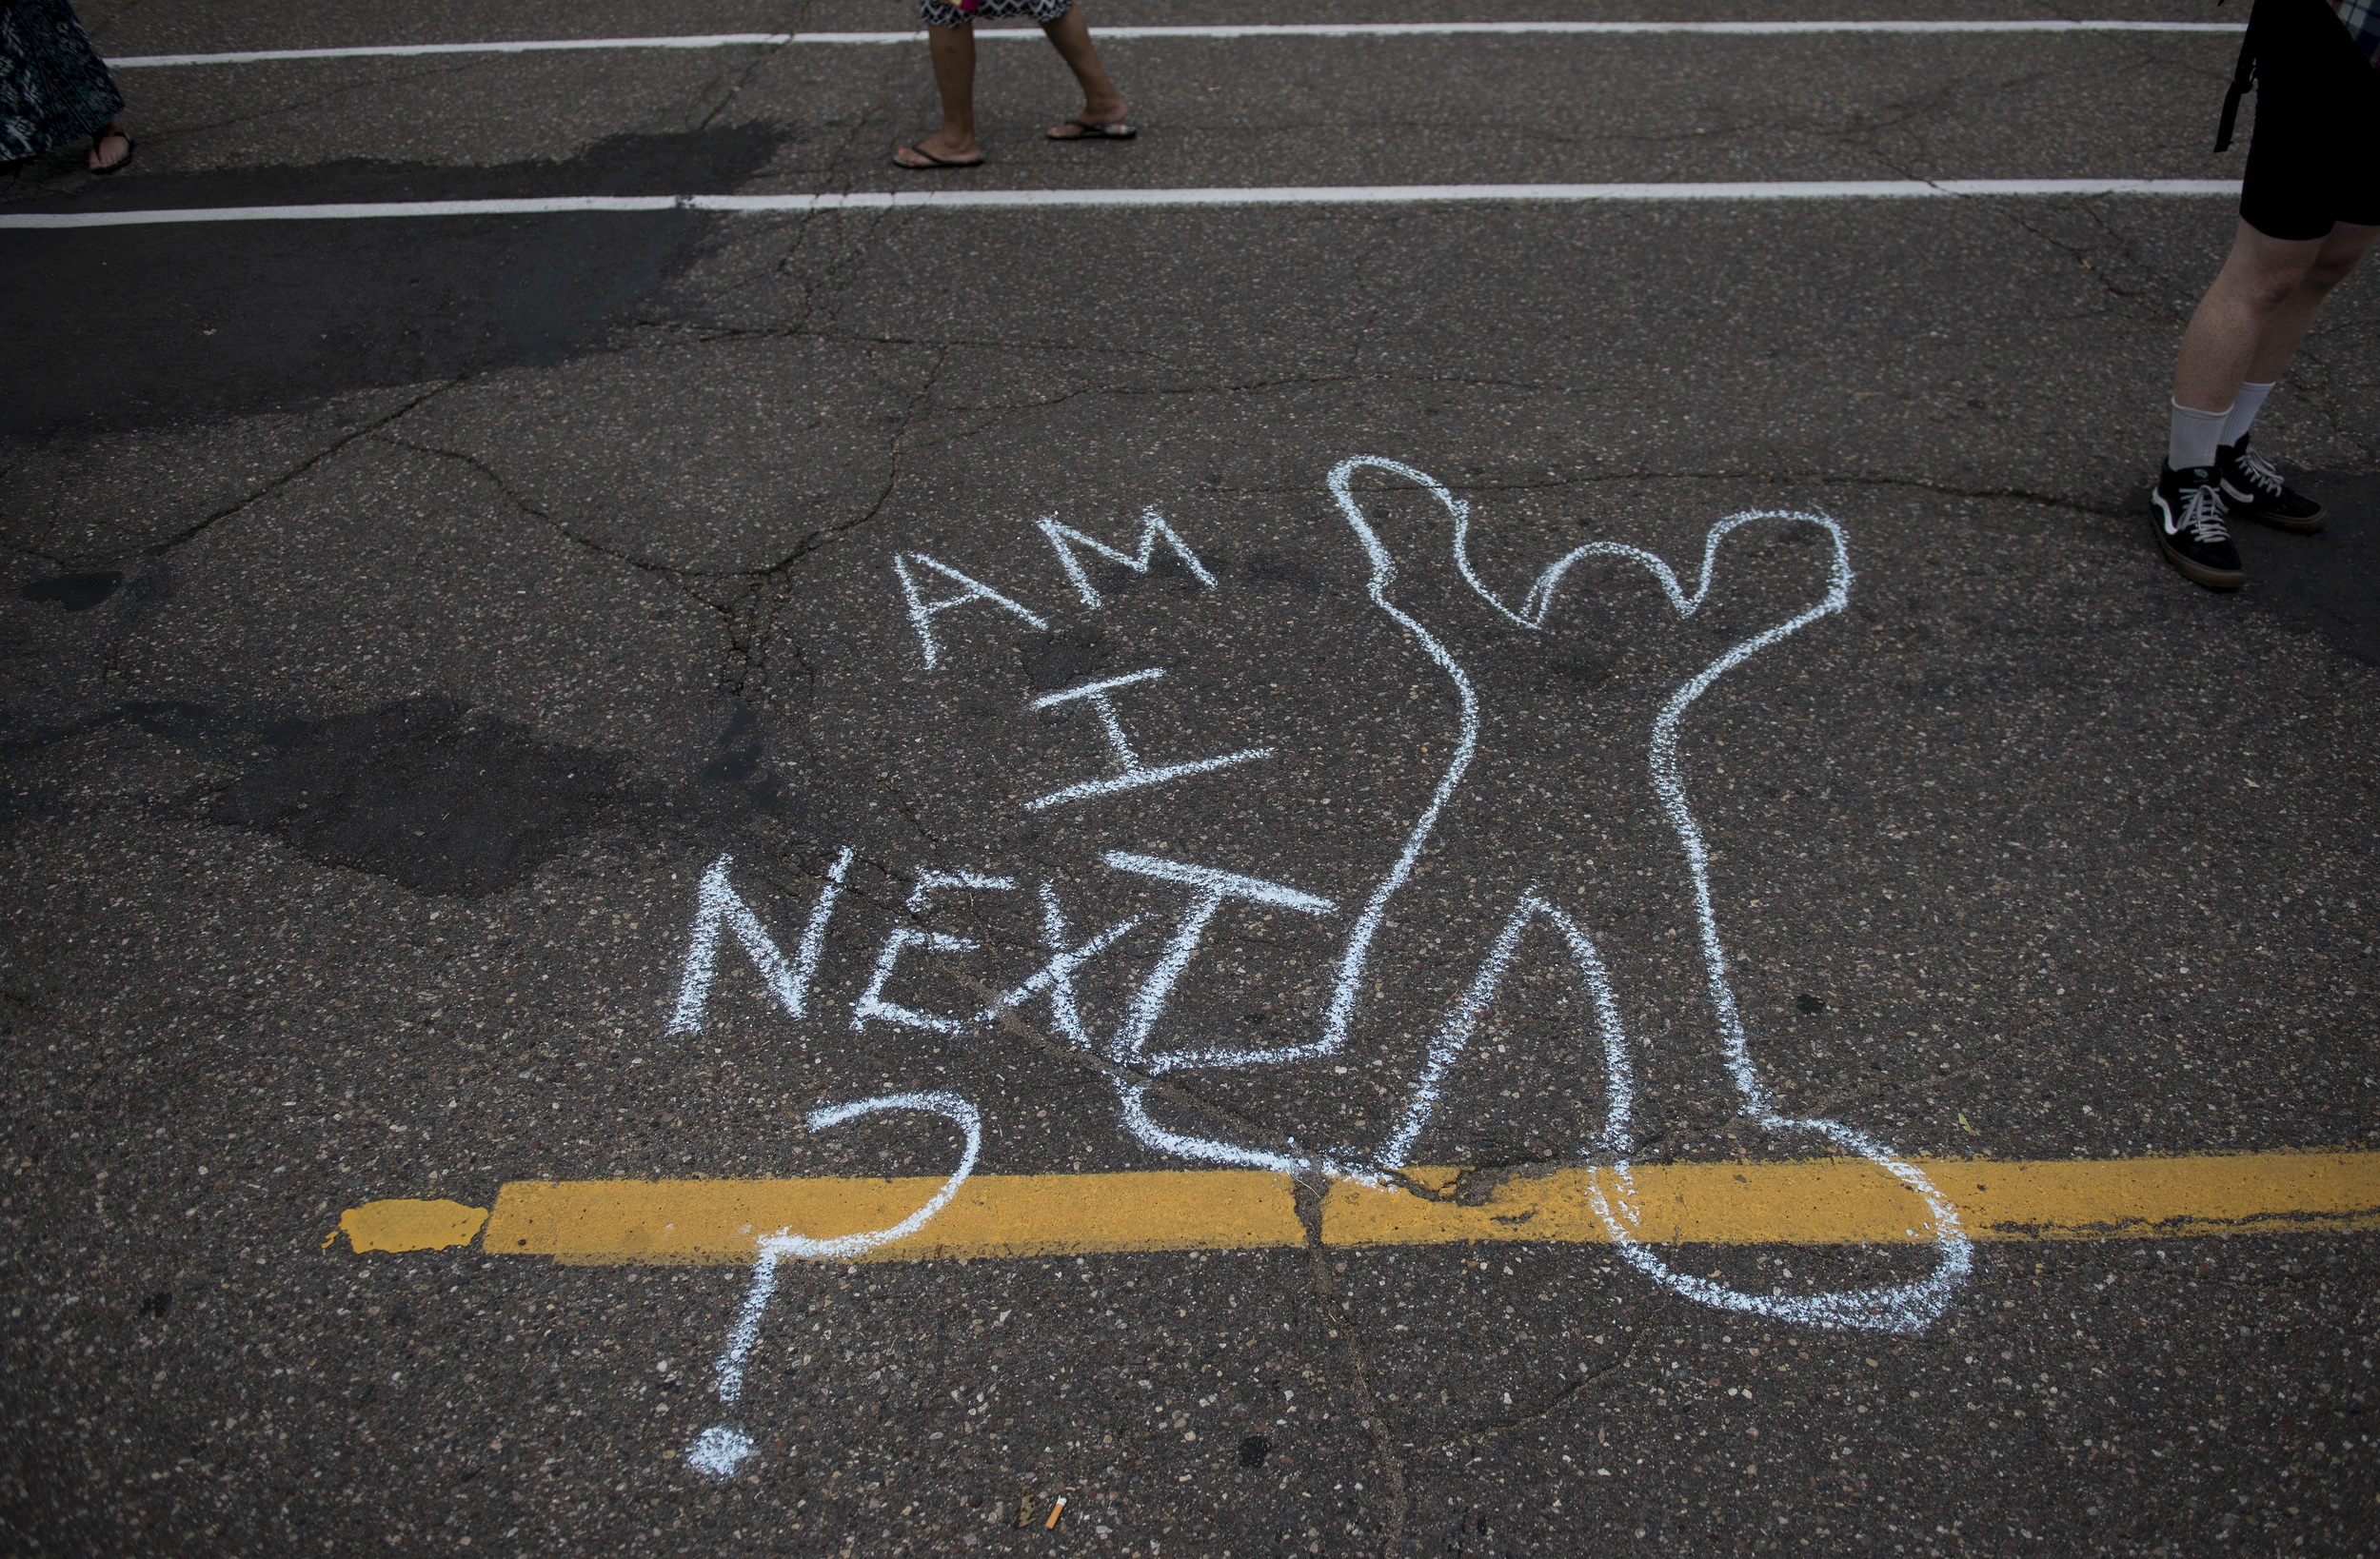 Graffiti  during a protest in support of the Black Lives Matter movement   in New York on   9th July  2016.Photo source: Getty Images/Stephen Maturen